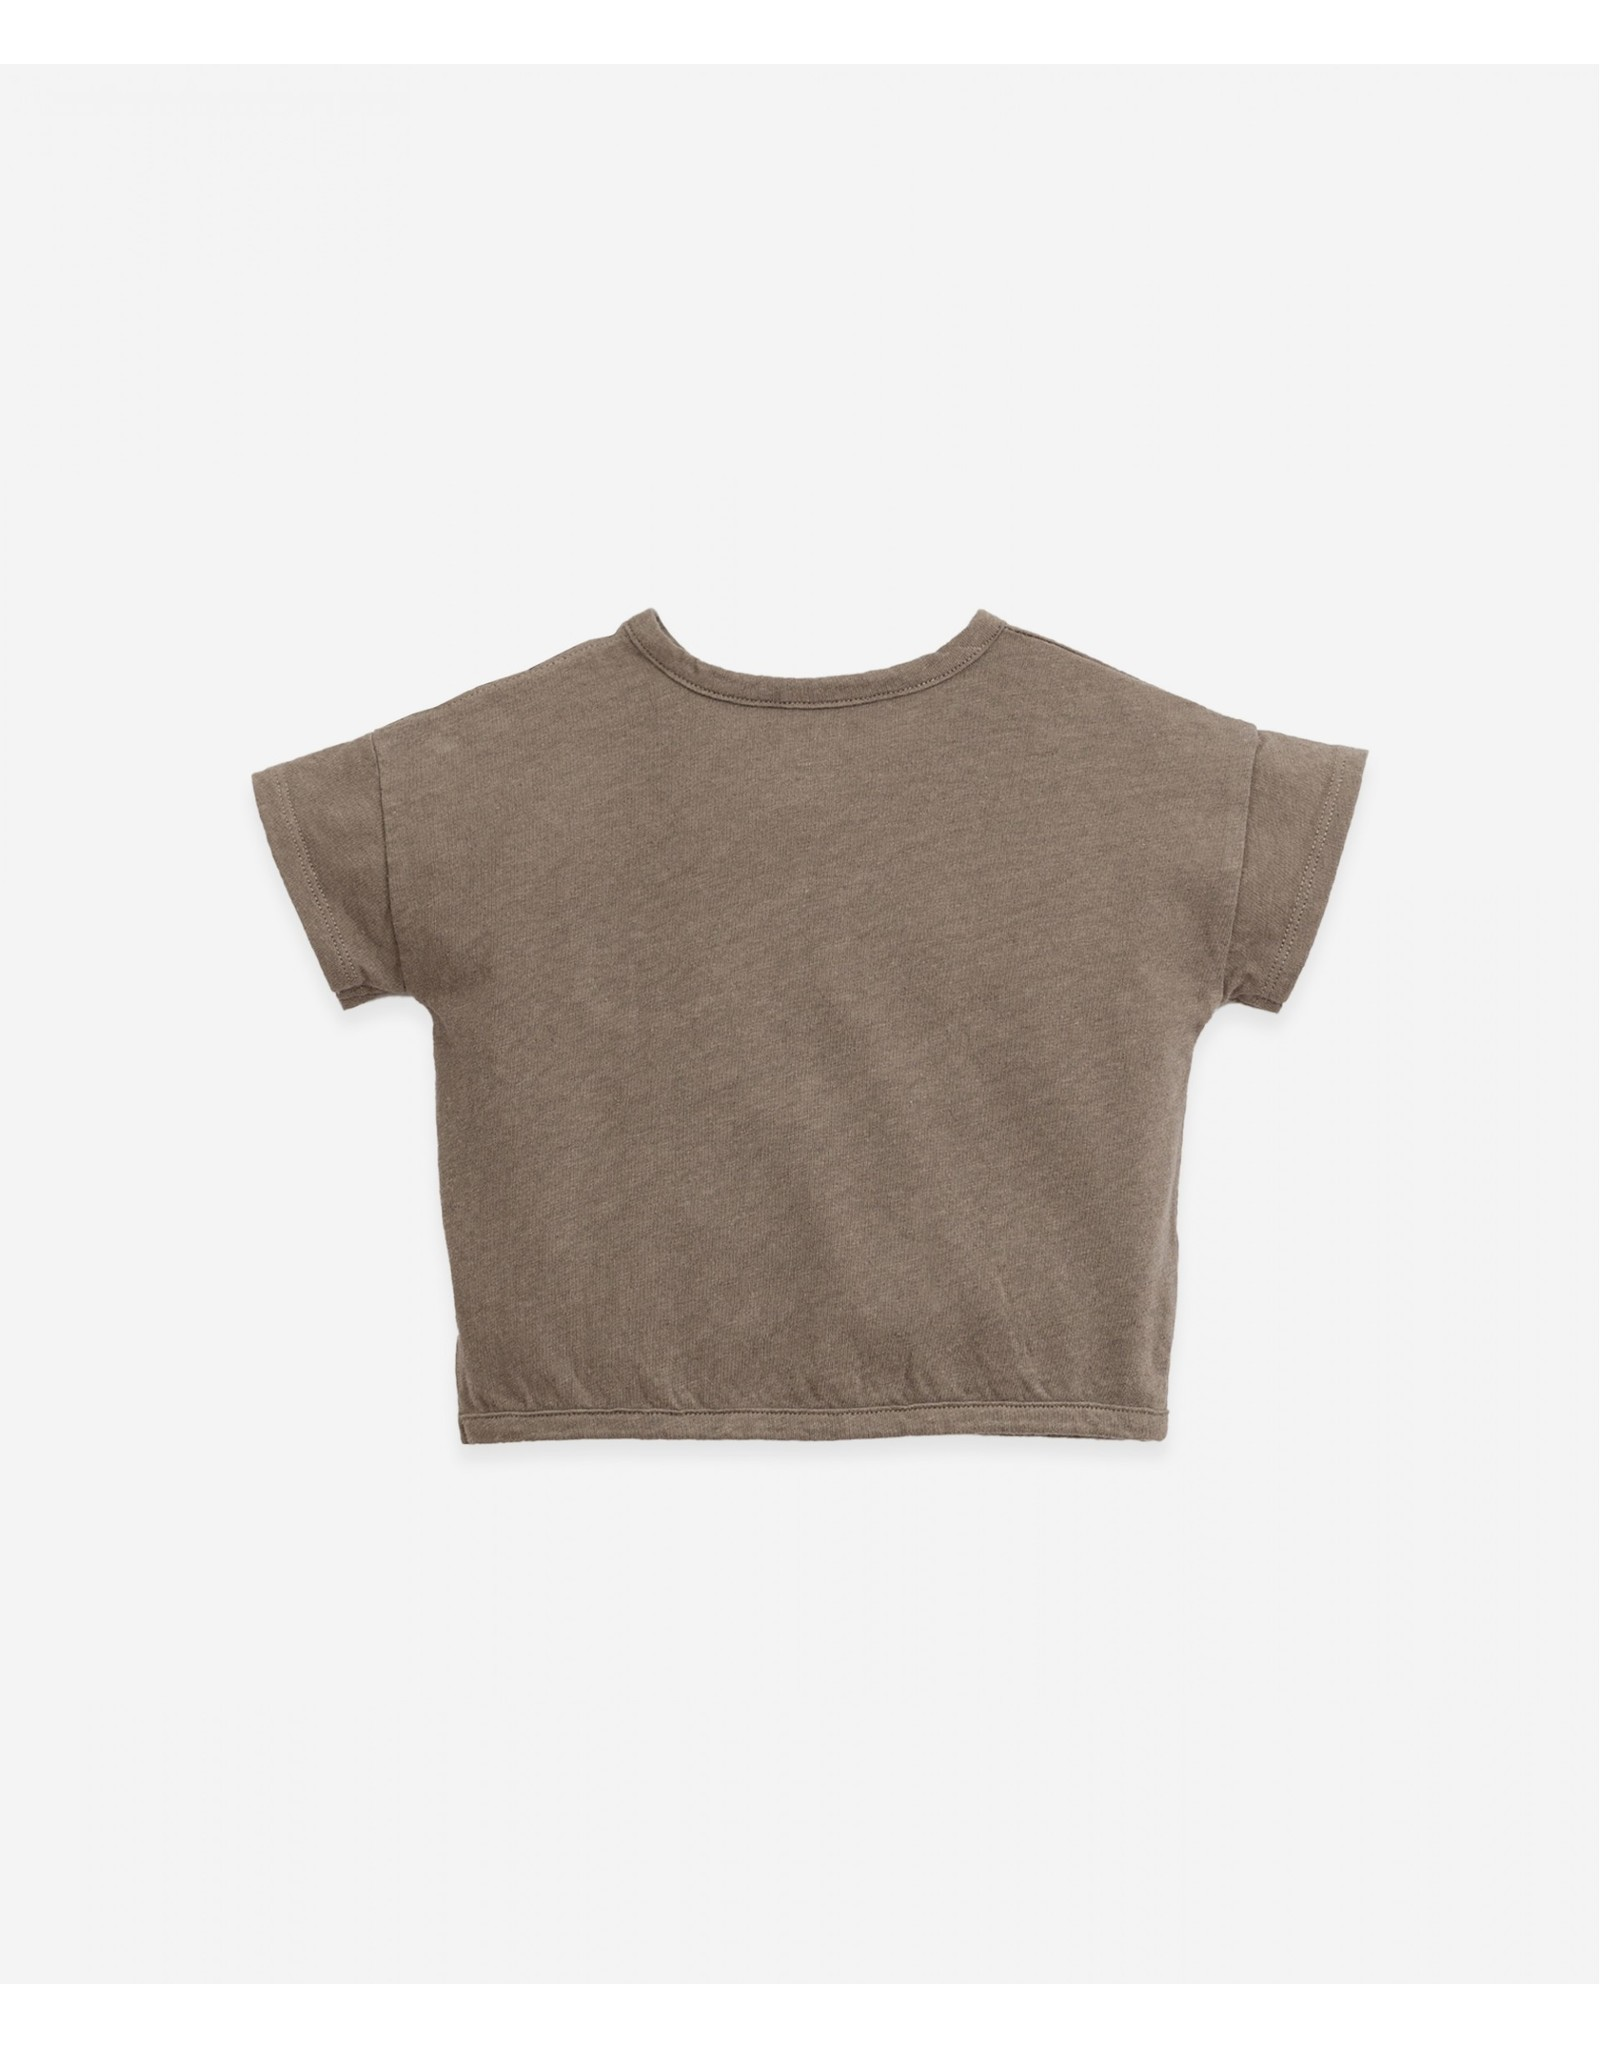 Play Up Play Up T-shirt in Organic cotton and linen Botany Pinha